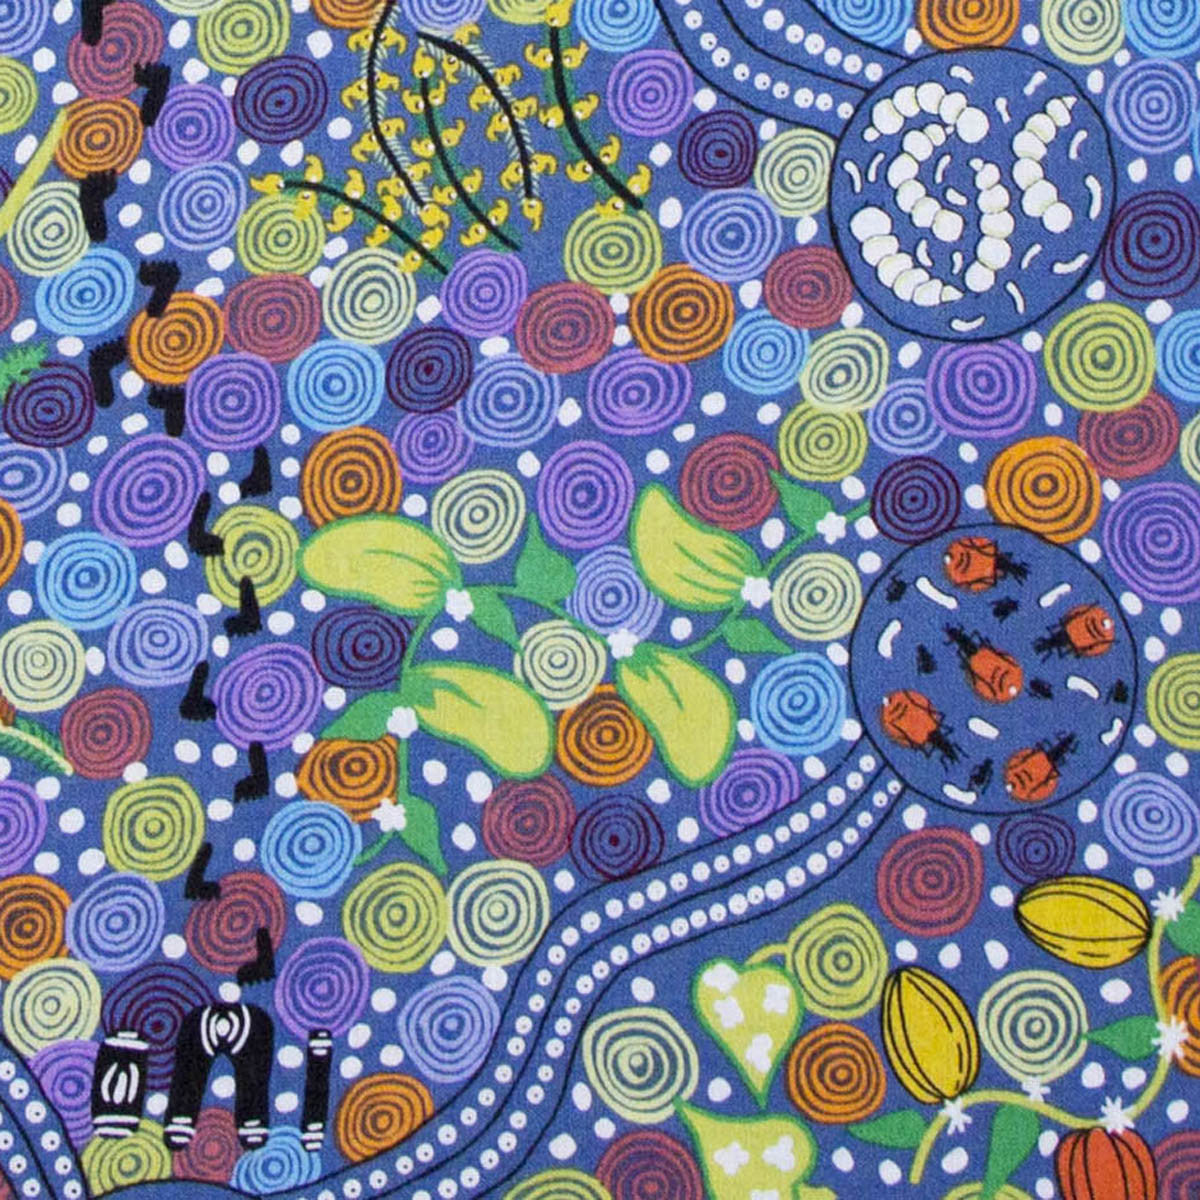 CORROBOREE BLUE by Australian Aboriginal Artist  DONNA MC NAMARA